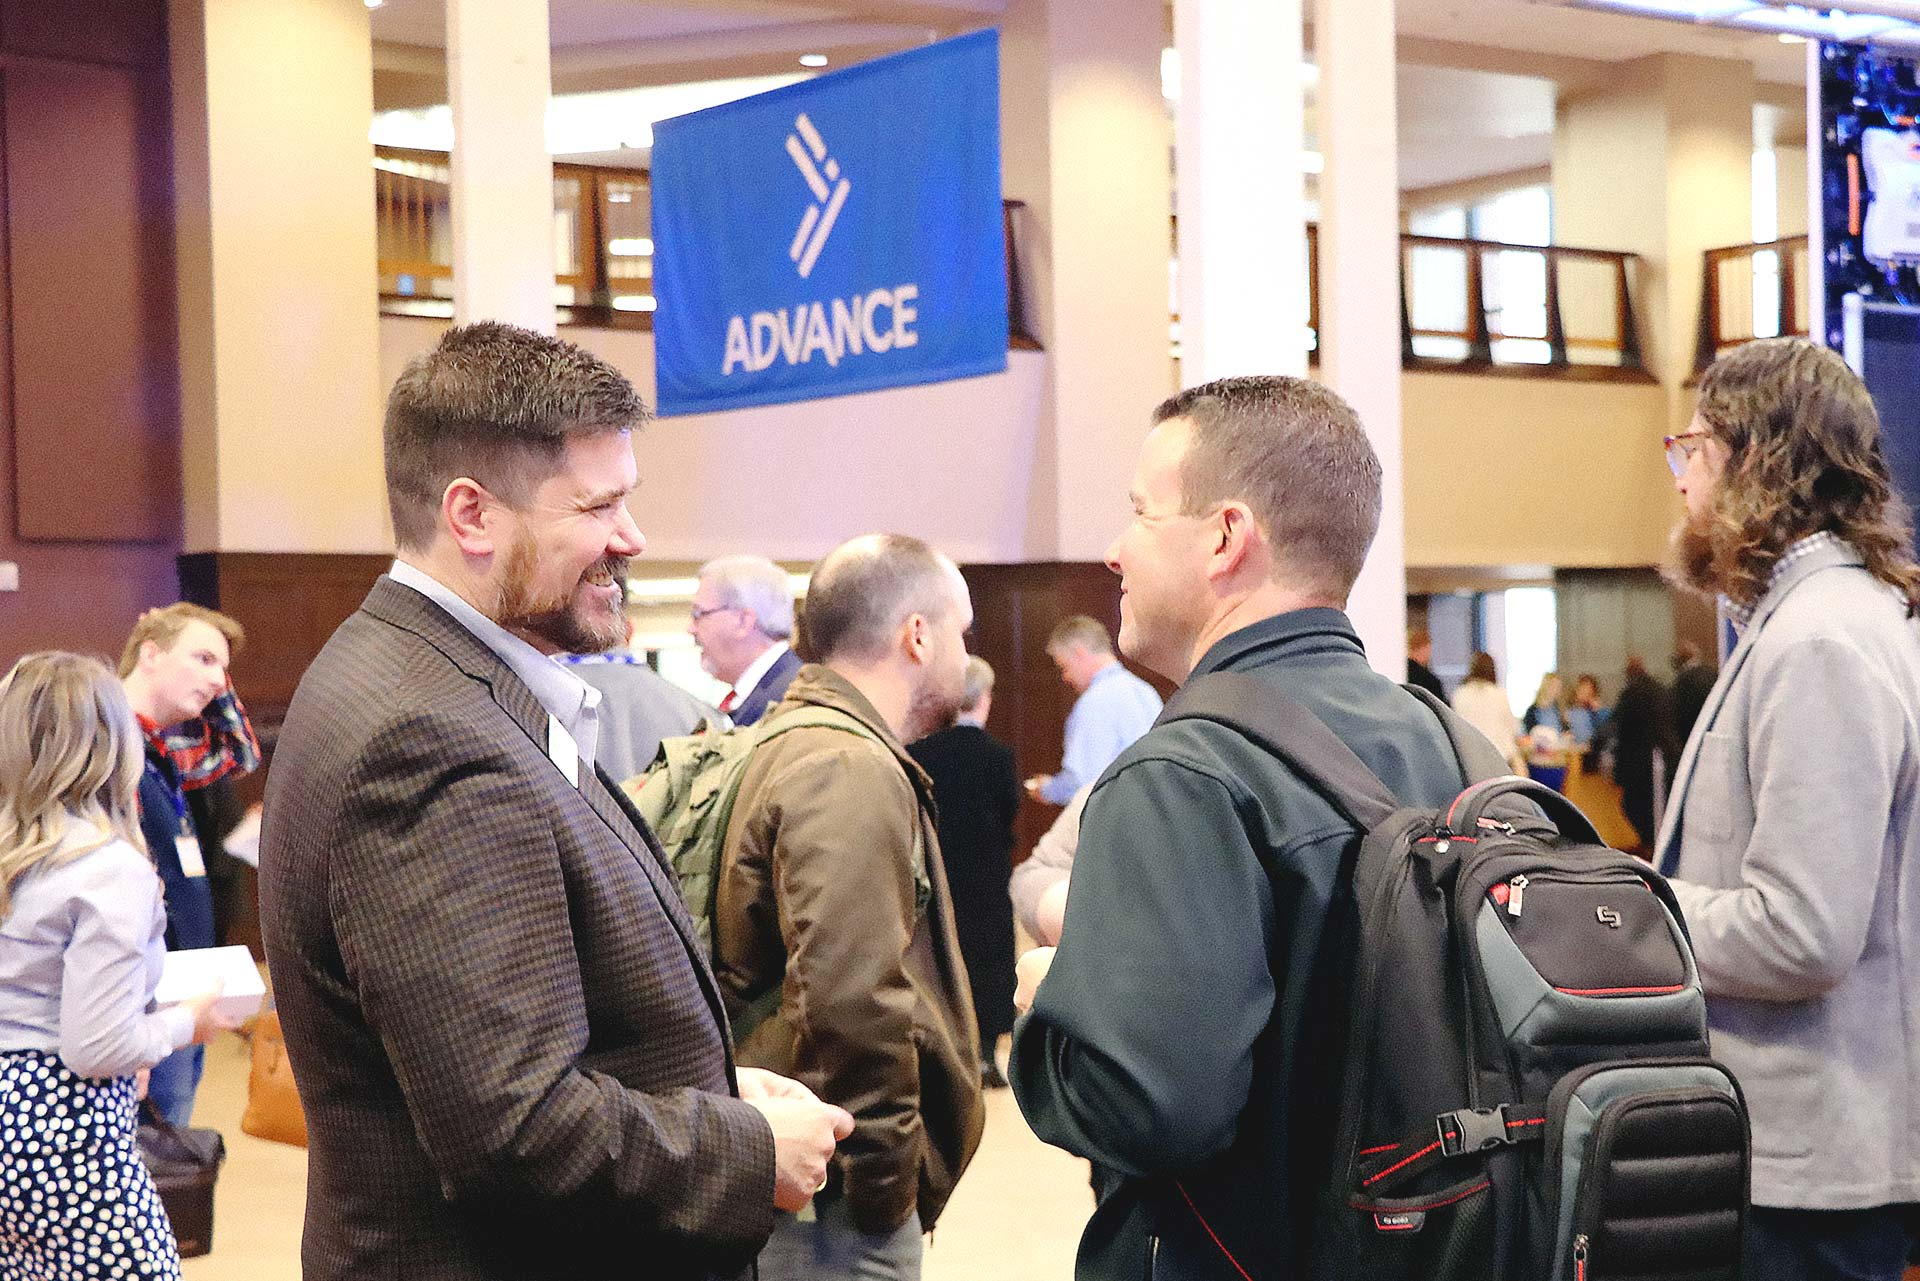 Two Oklahoma Baptists laugh, in the background is a banner using the Oklahoma Baptists logo icon.